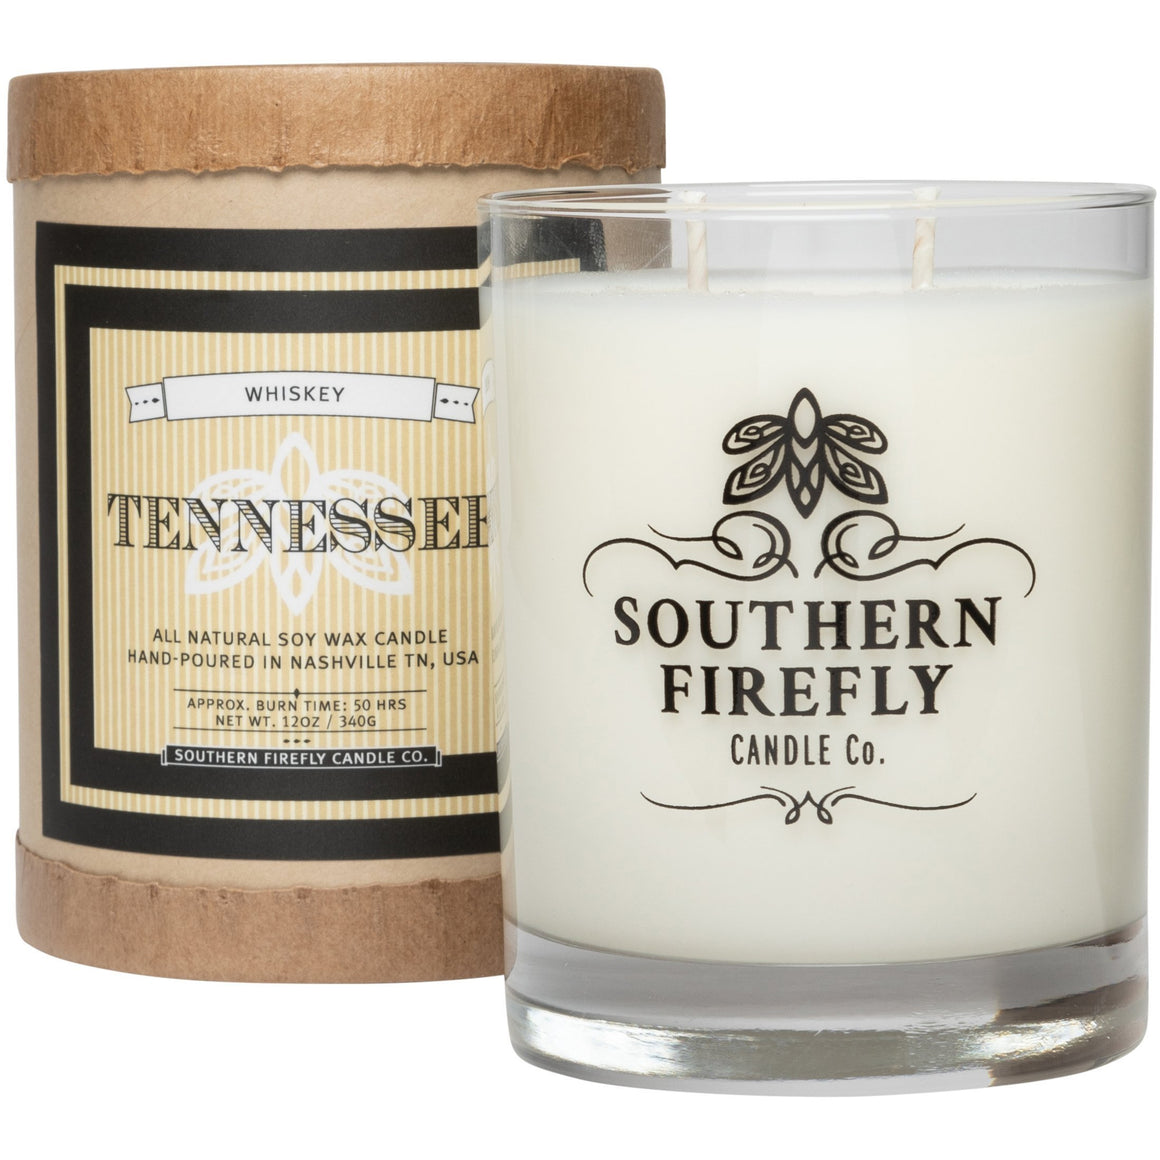 Southern Firefly Candle Co. TENNESSEE WHISKEY - 14 oz GLASS CONTAINER